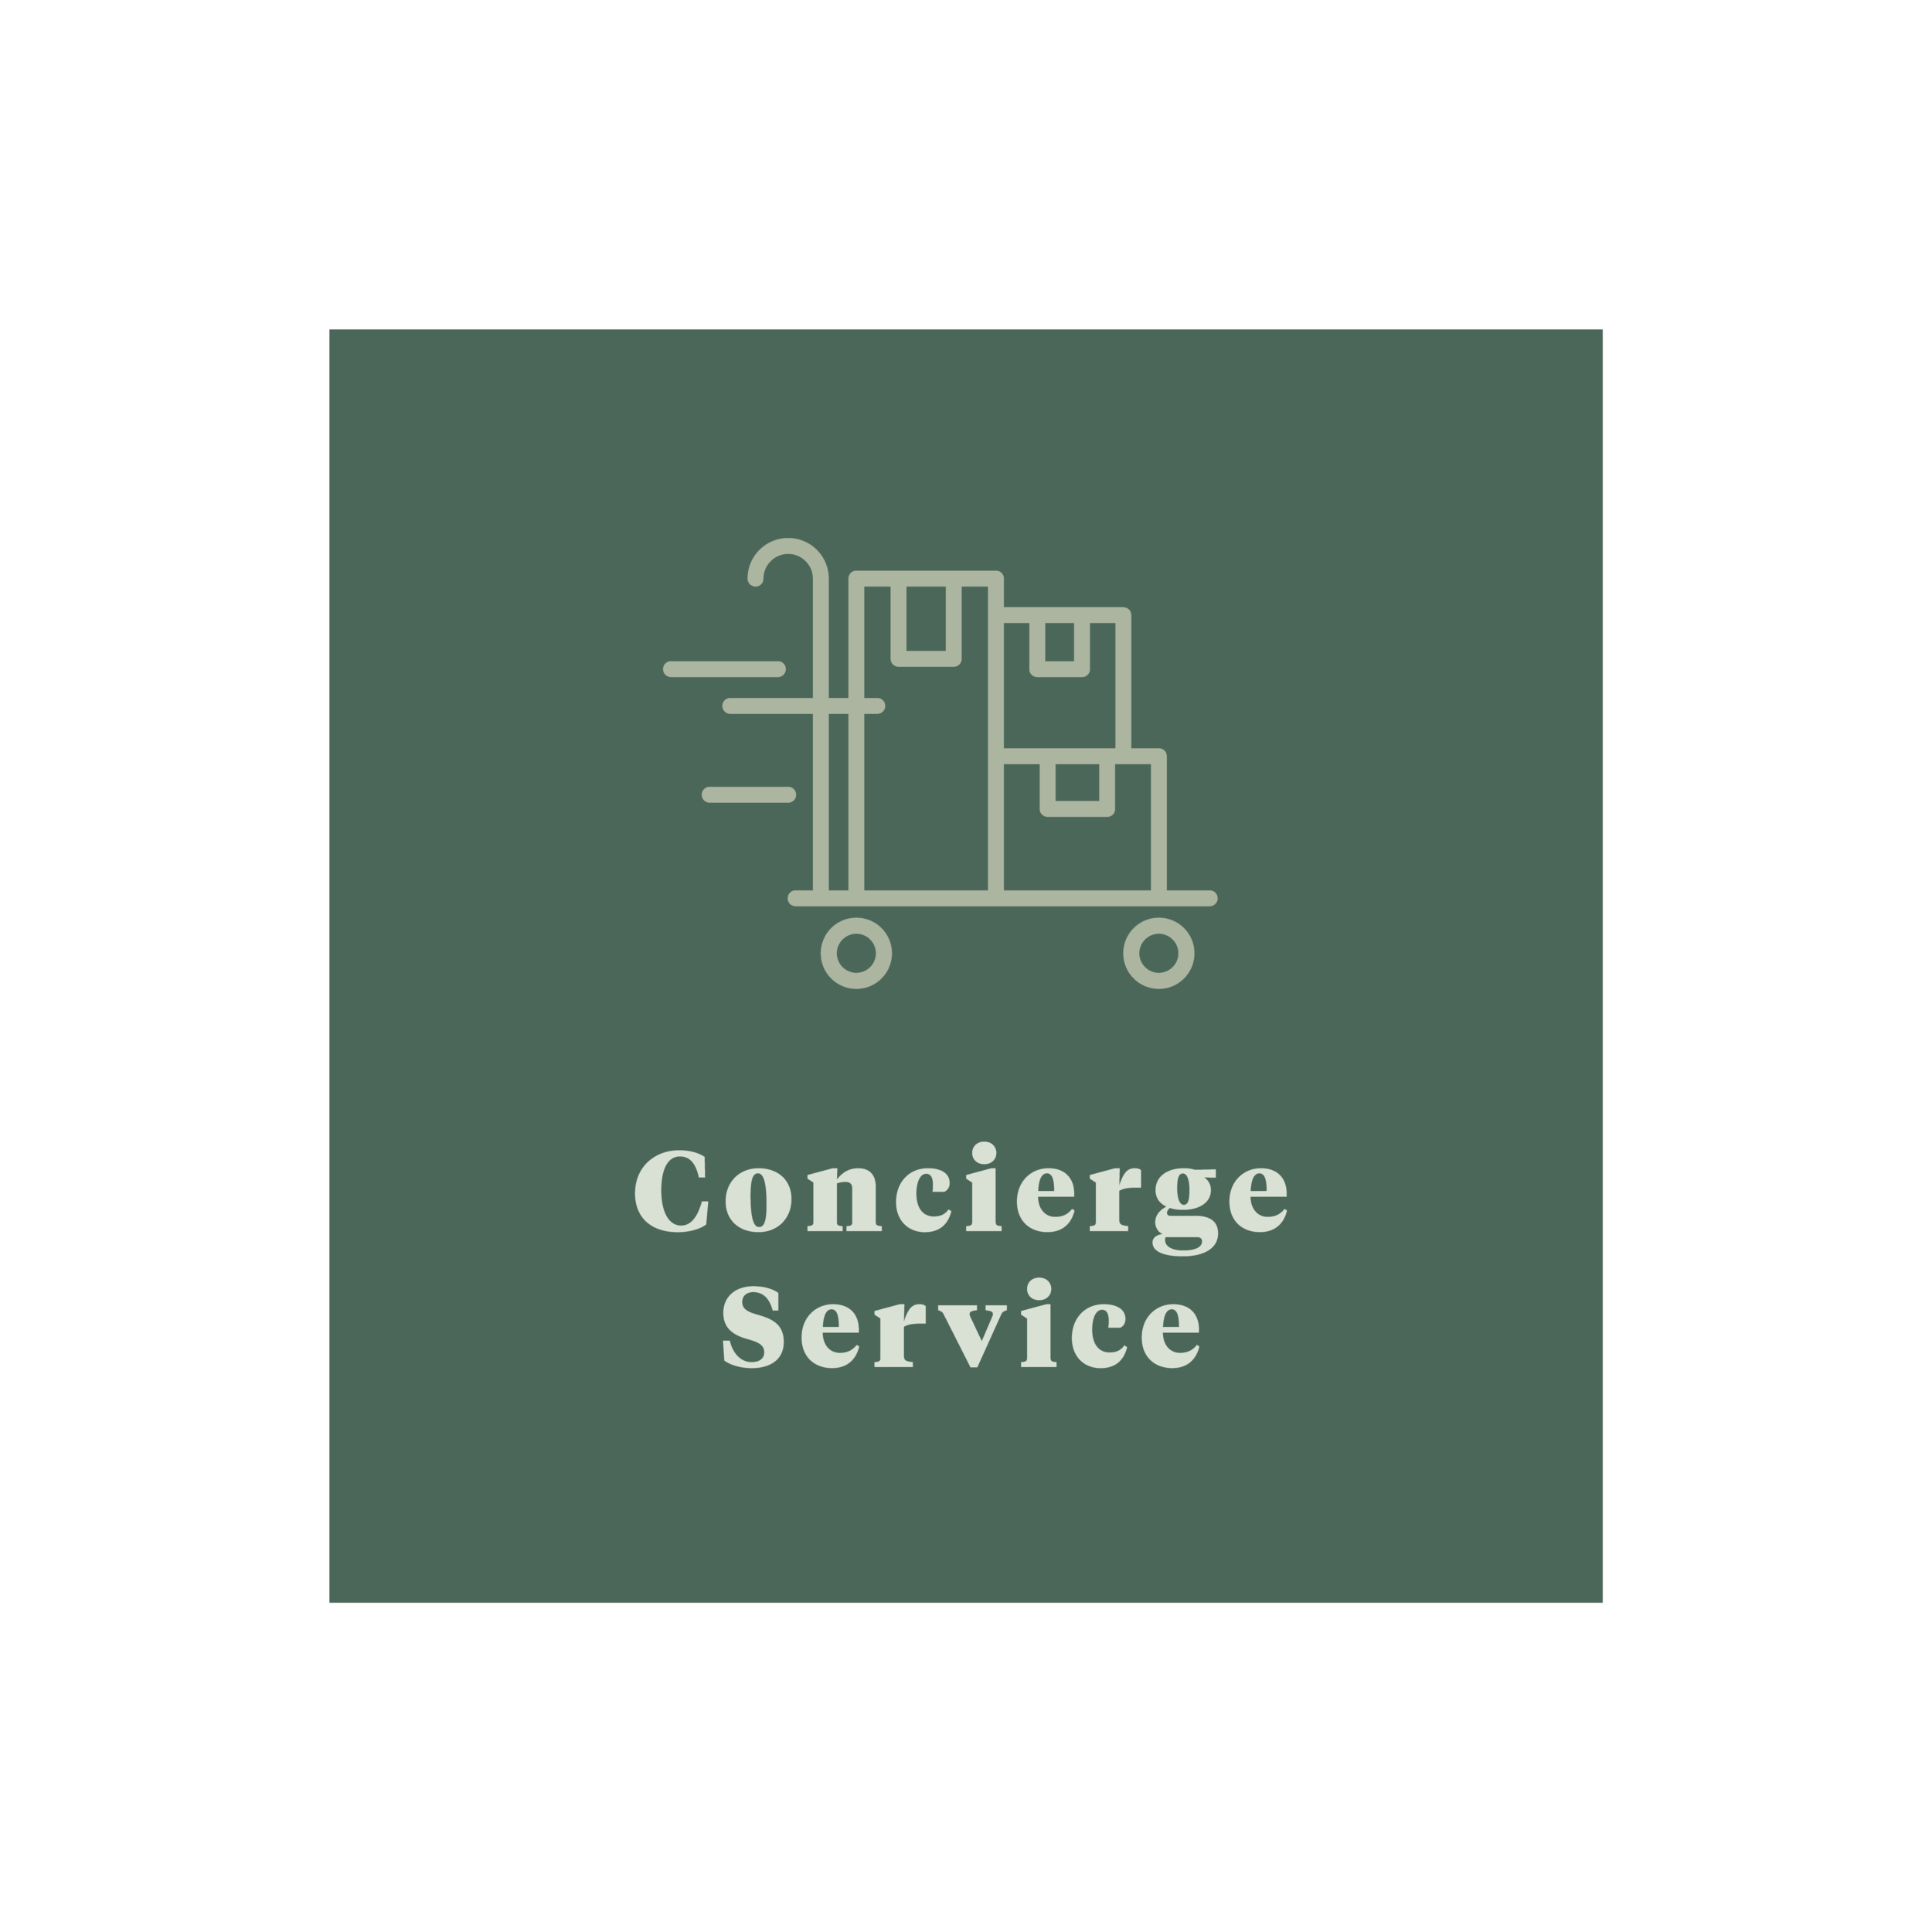 Park City Concierge Services - Concierge Service